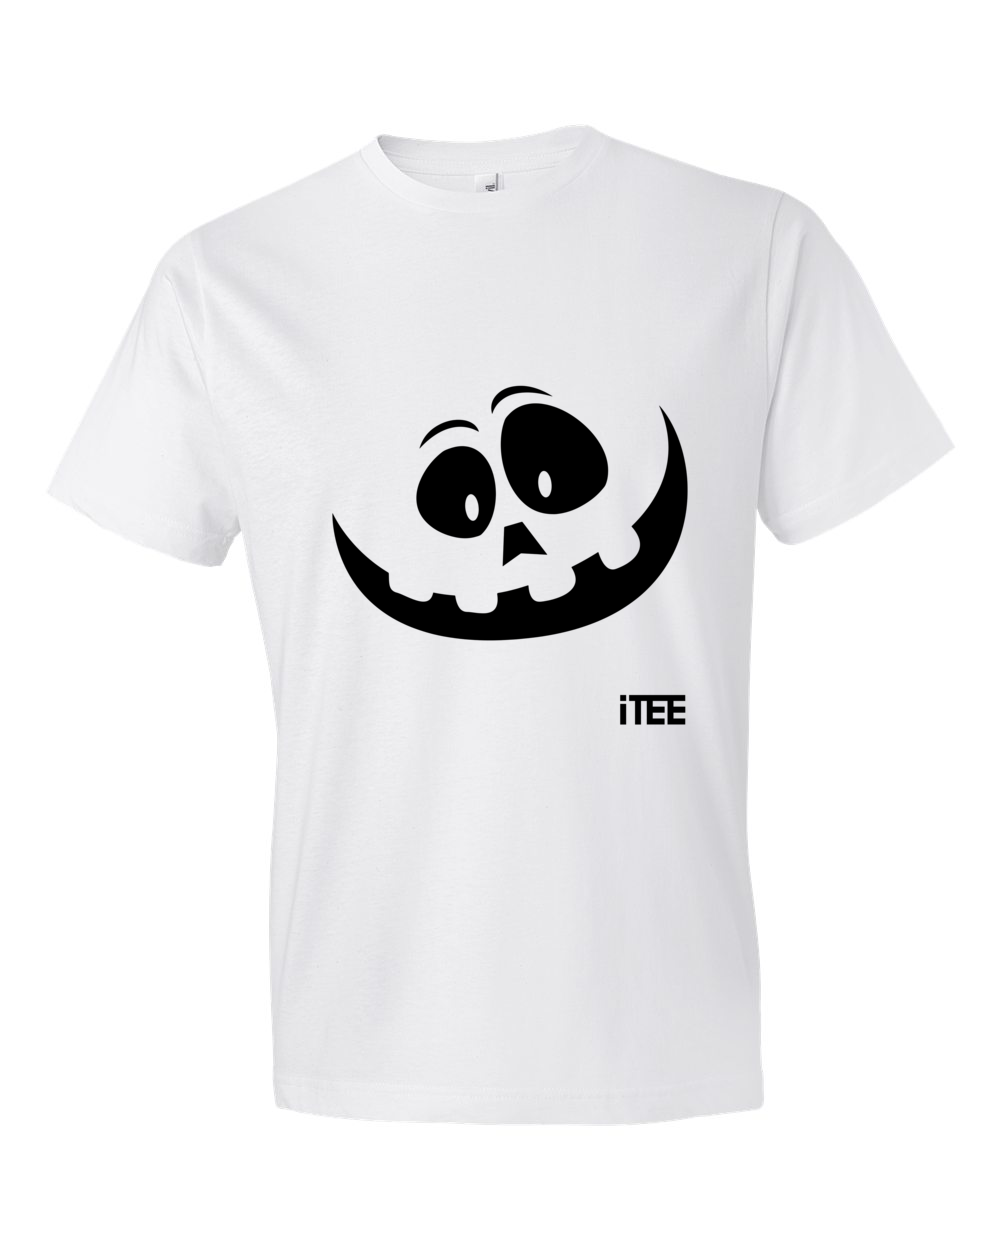 Happy-Ghost-Lightweight-Fashion-Short-Sleeve-T-Shirt-by-iTEE.com